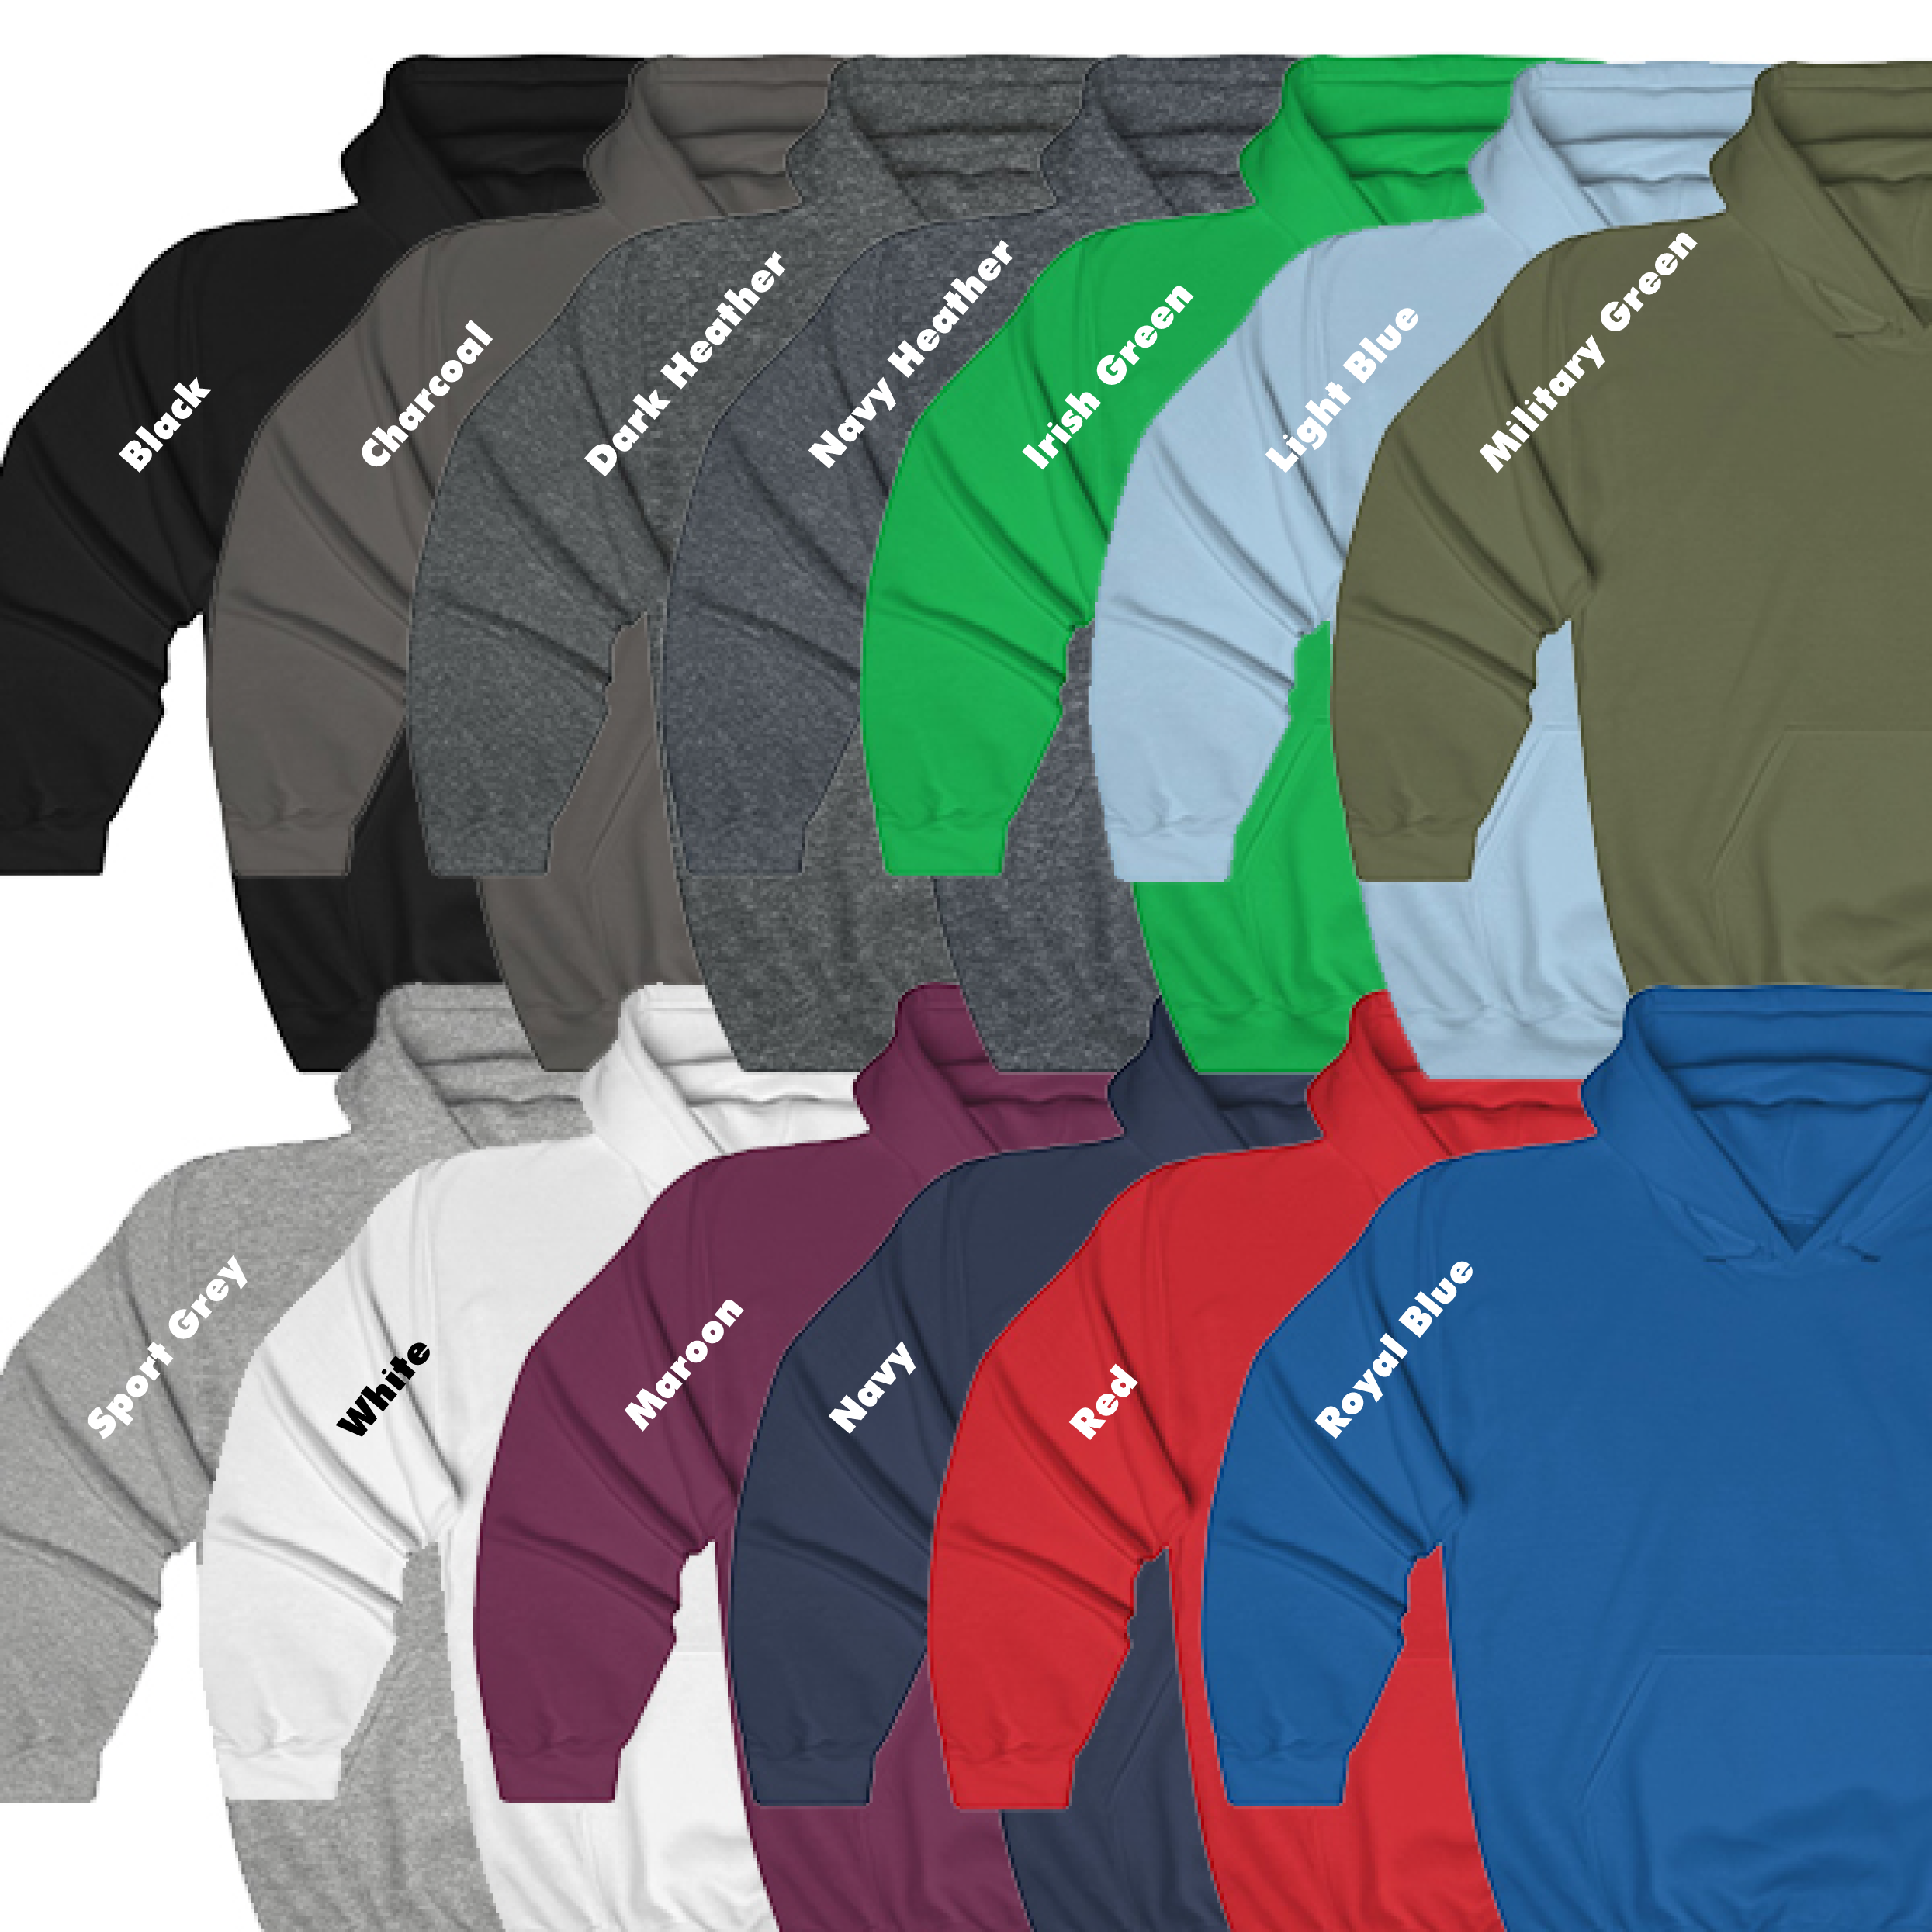 Pull Over Hoodie Colors